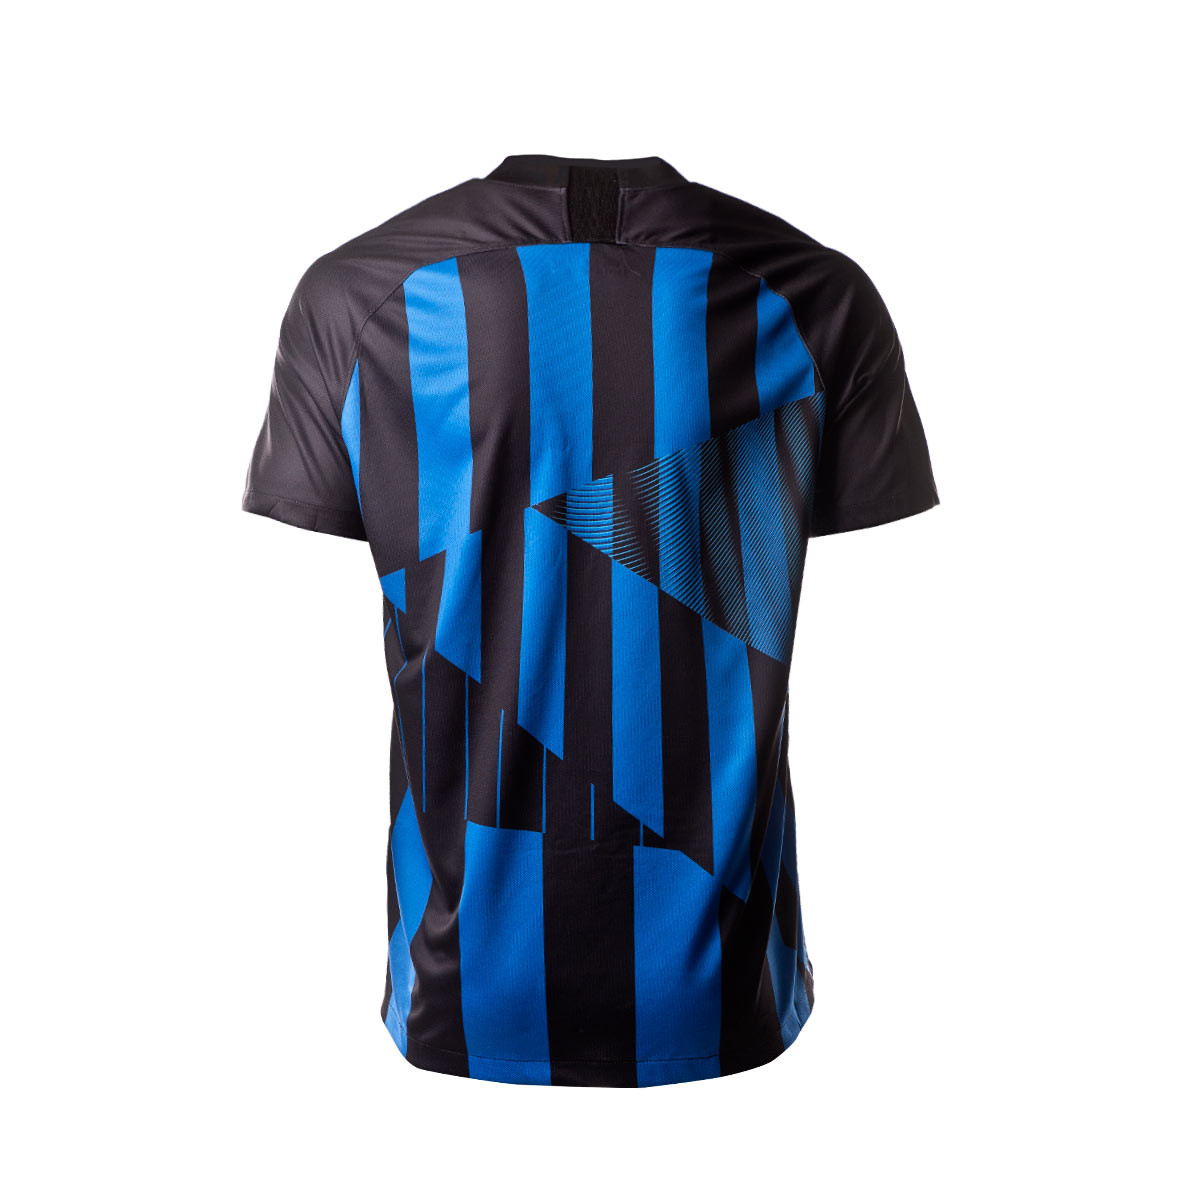 9a44b7c13 Camiseta Nike Inter Milan Stadium 20th Aniversario 2018-2019 Black-Royal  blue-White - Tienda de fútbol Fútbol Emotion